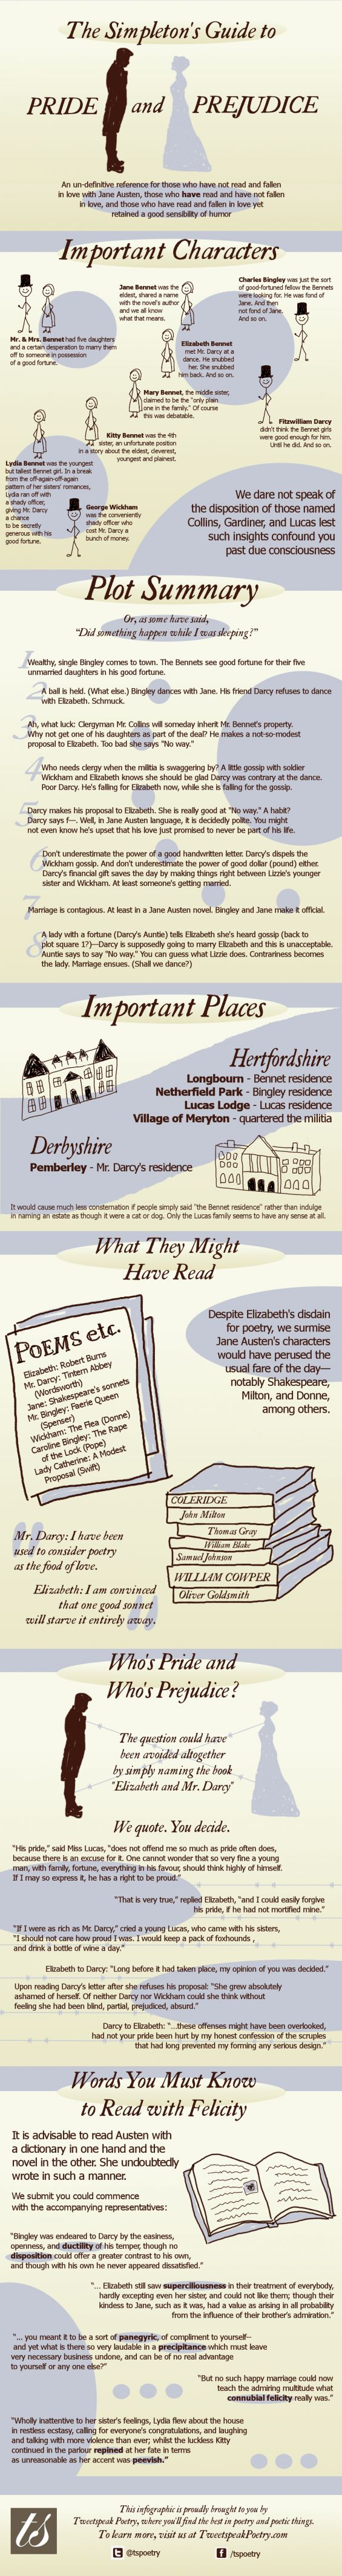 "A clear infographic on ""Pride and Prejudice""  Also by Tweetspeak Poetry, check these Pride  Prejudice poems, etc. (we surmise)  A Red, Red Rose. Robert Burns  Tintern Abbey. William Wordsworth  Sonnet 116. William Shakespeare  The Faerie Queene, Dedicatory Sonnets. Edmund Spenser  The Flea. John Donne  The Rape of the Lock. Alexander Pope  A Modest Proposal. Jonathan Swift"